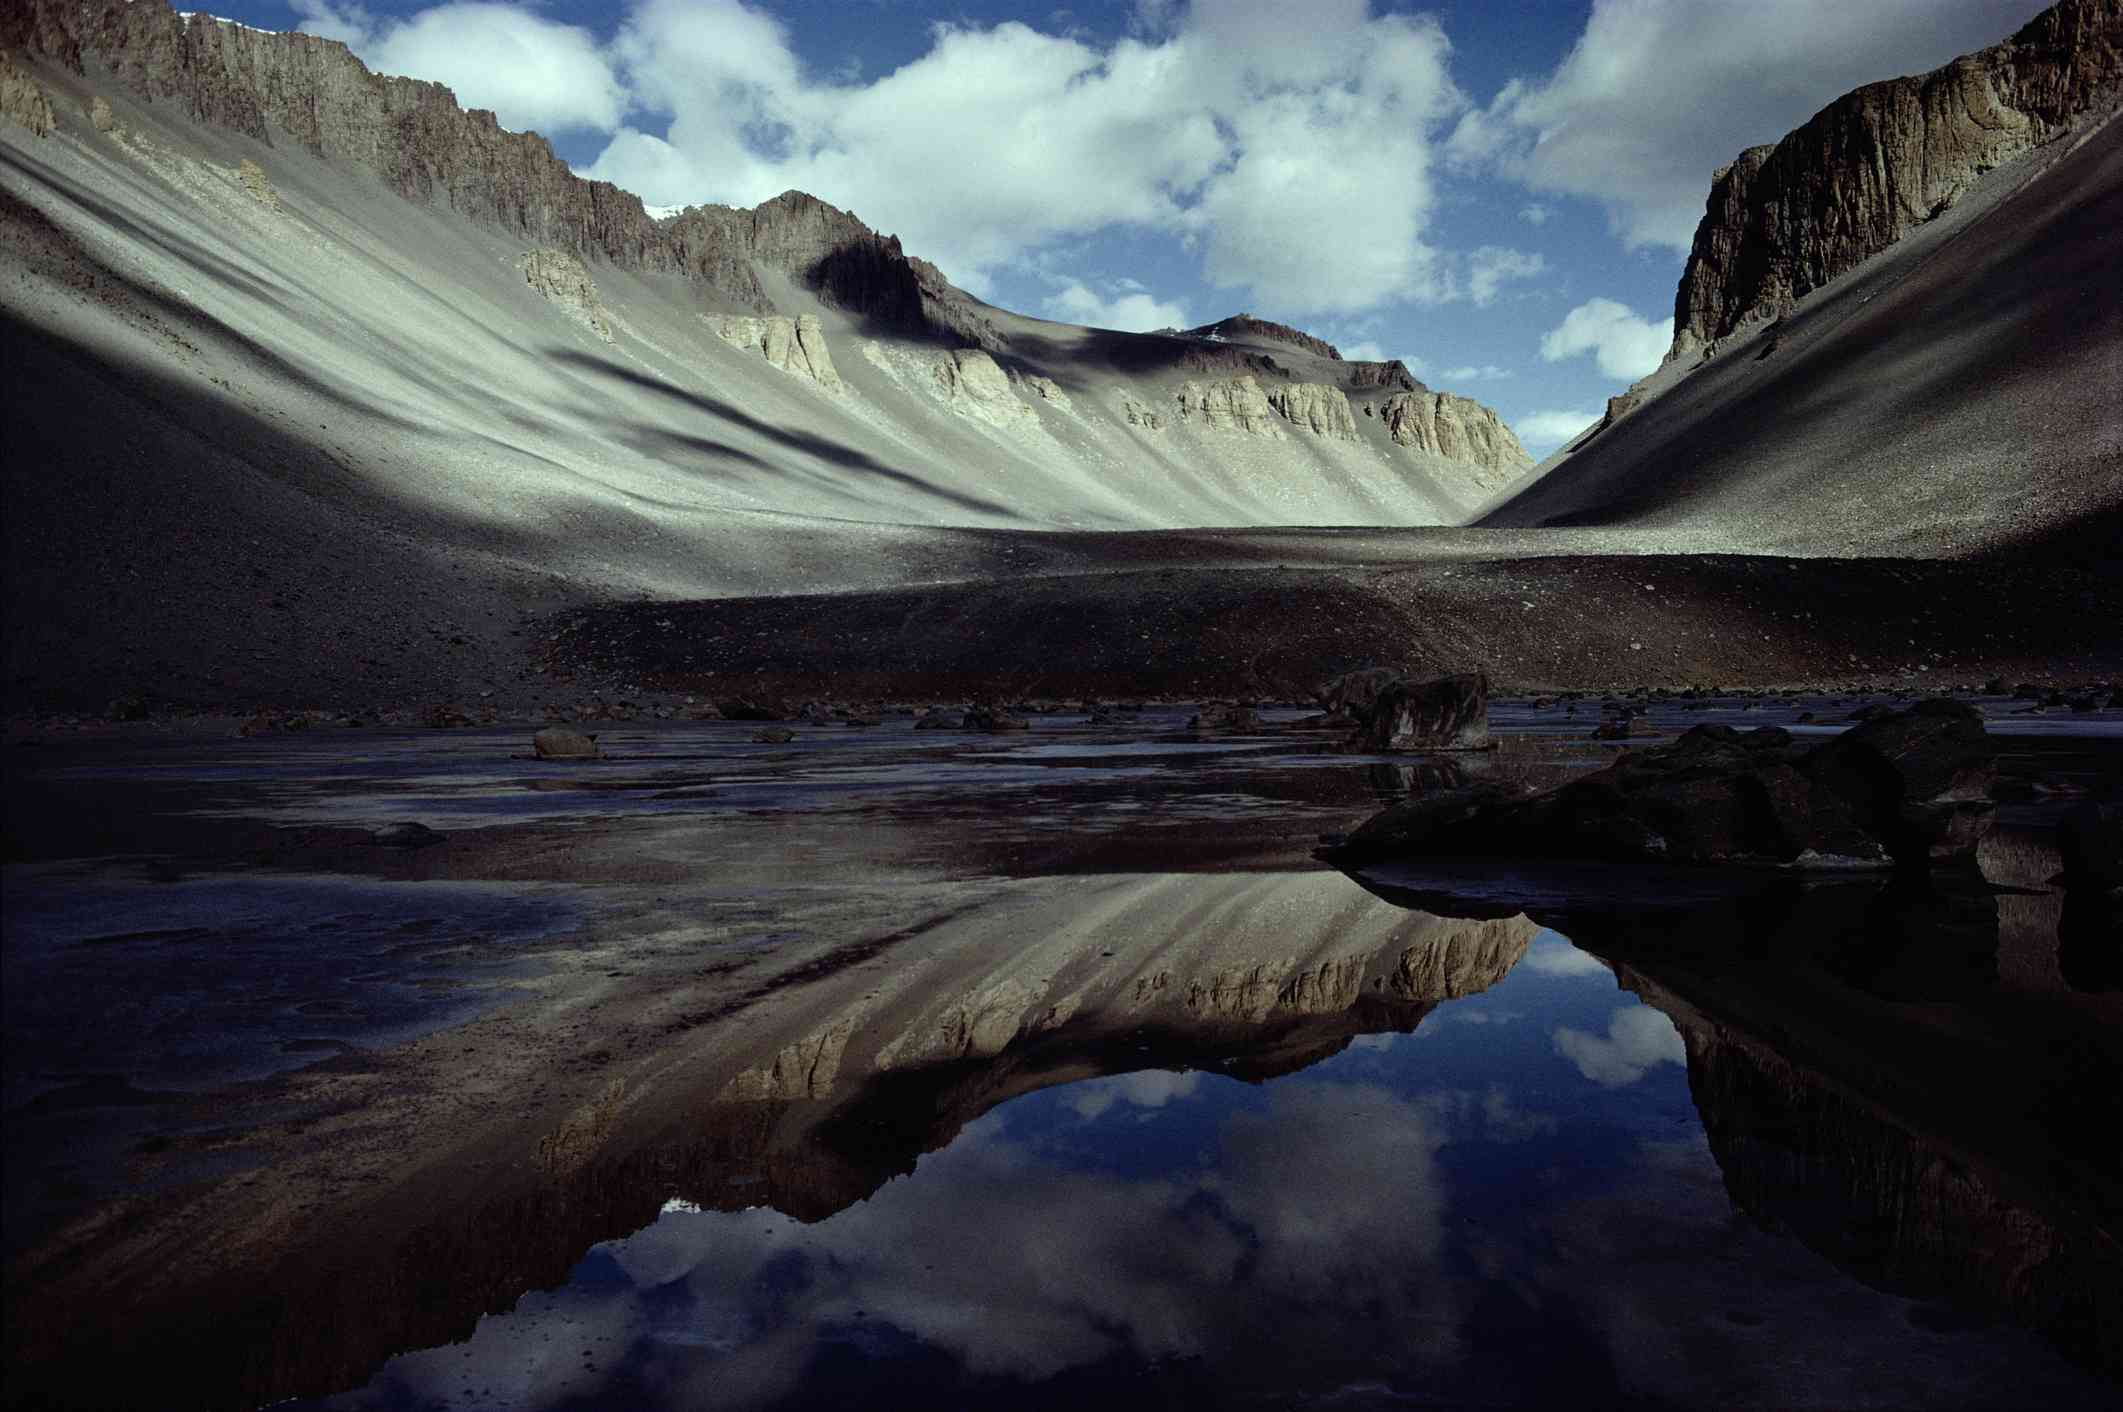 Gray rocky mountains reflected in the waters of a small pond